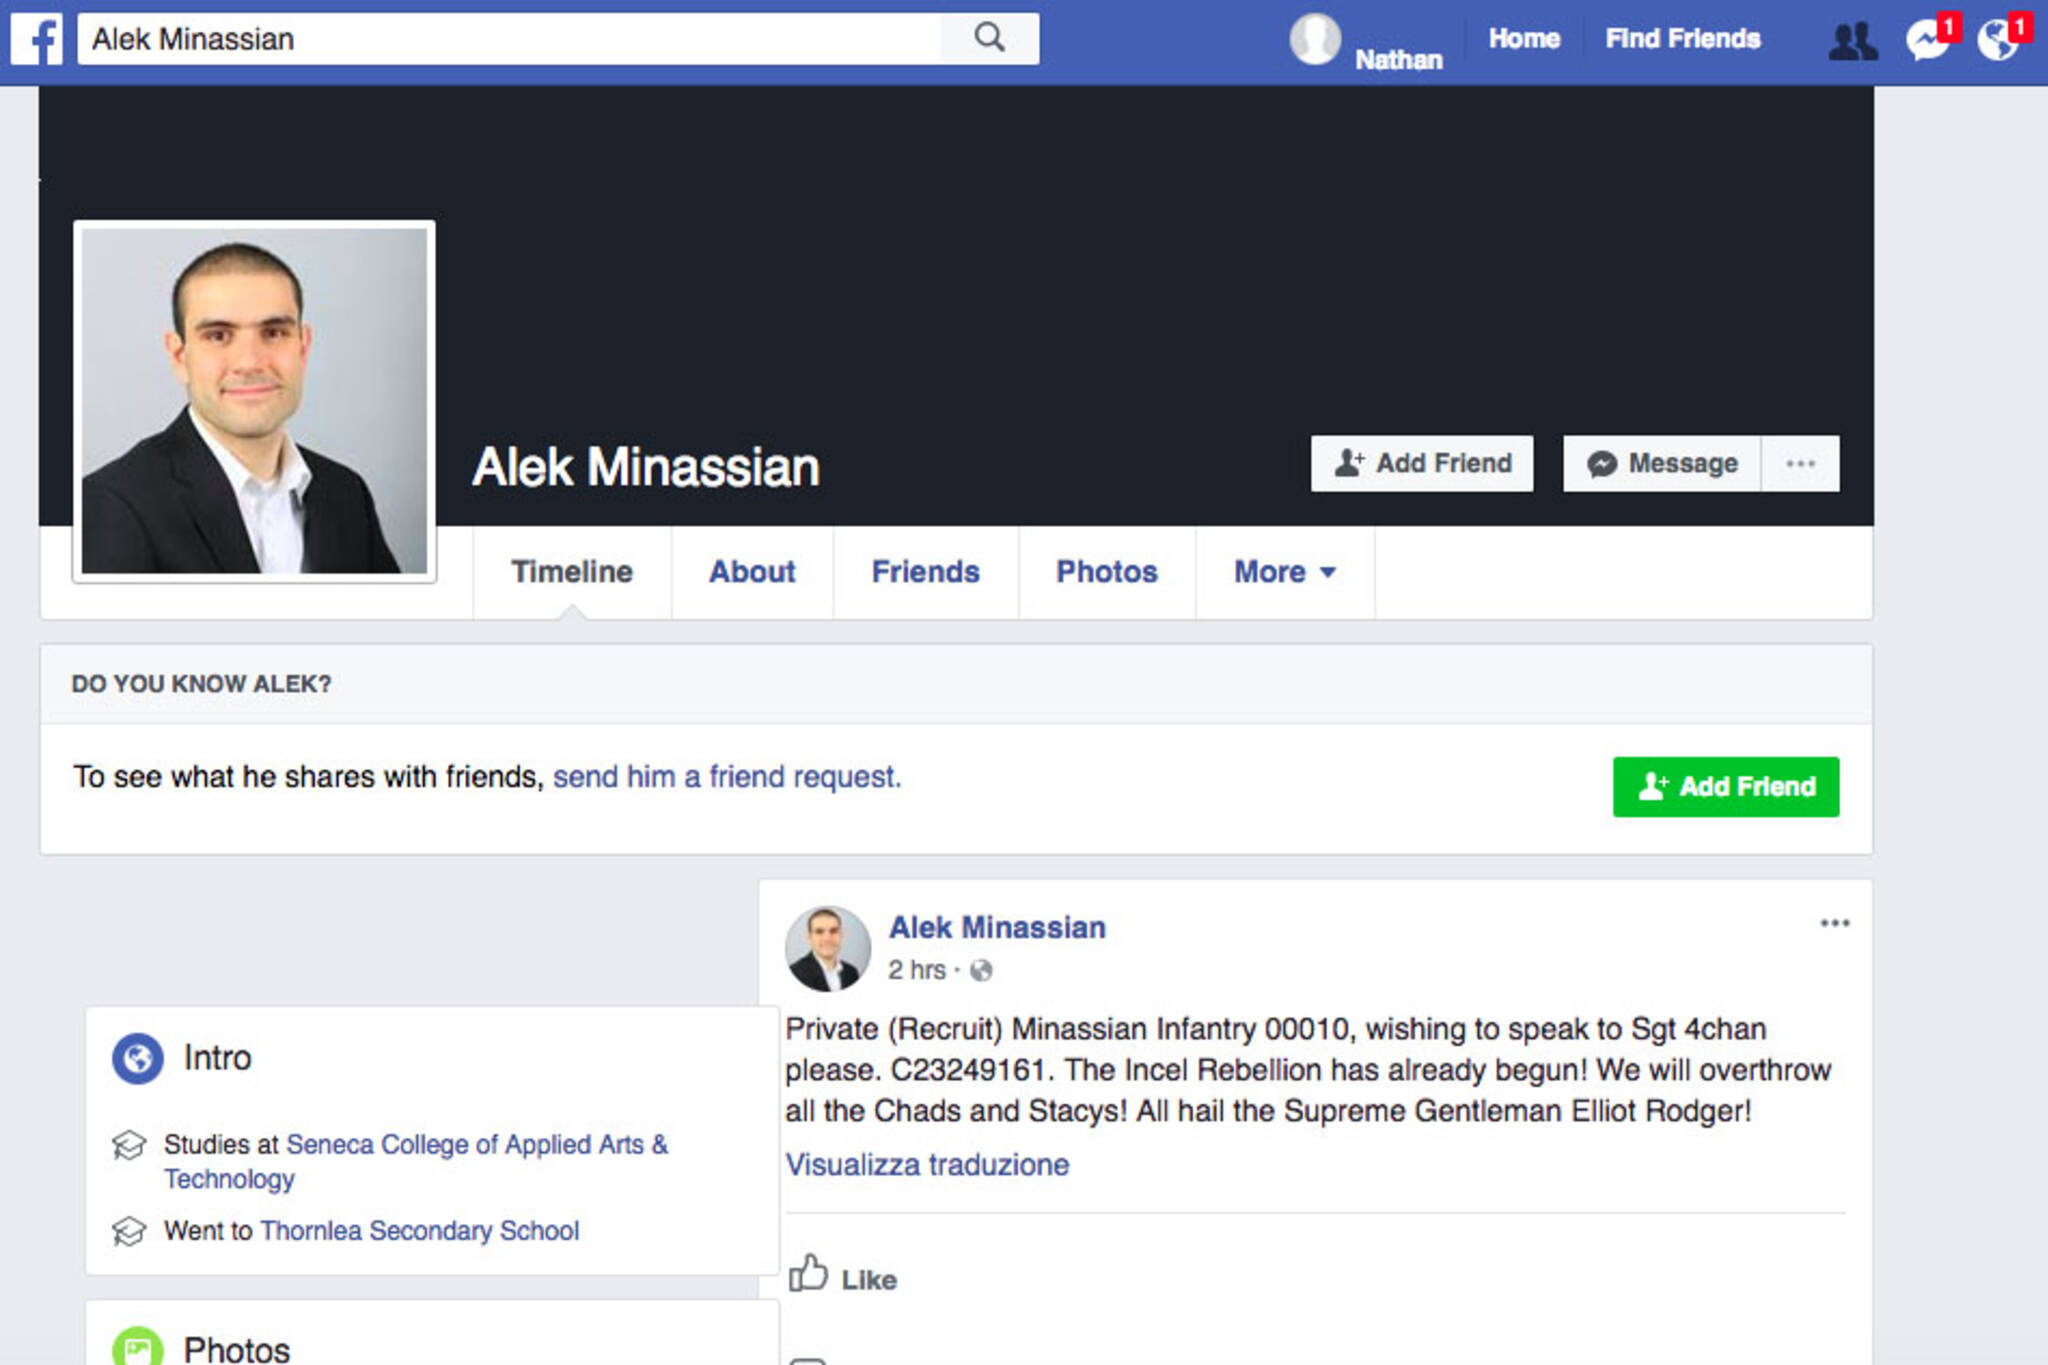 Alek Minassian Facebook